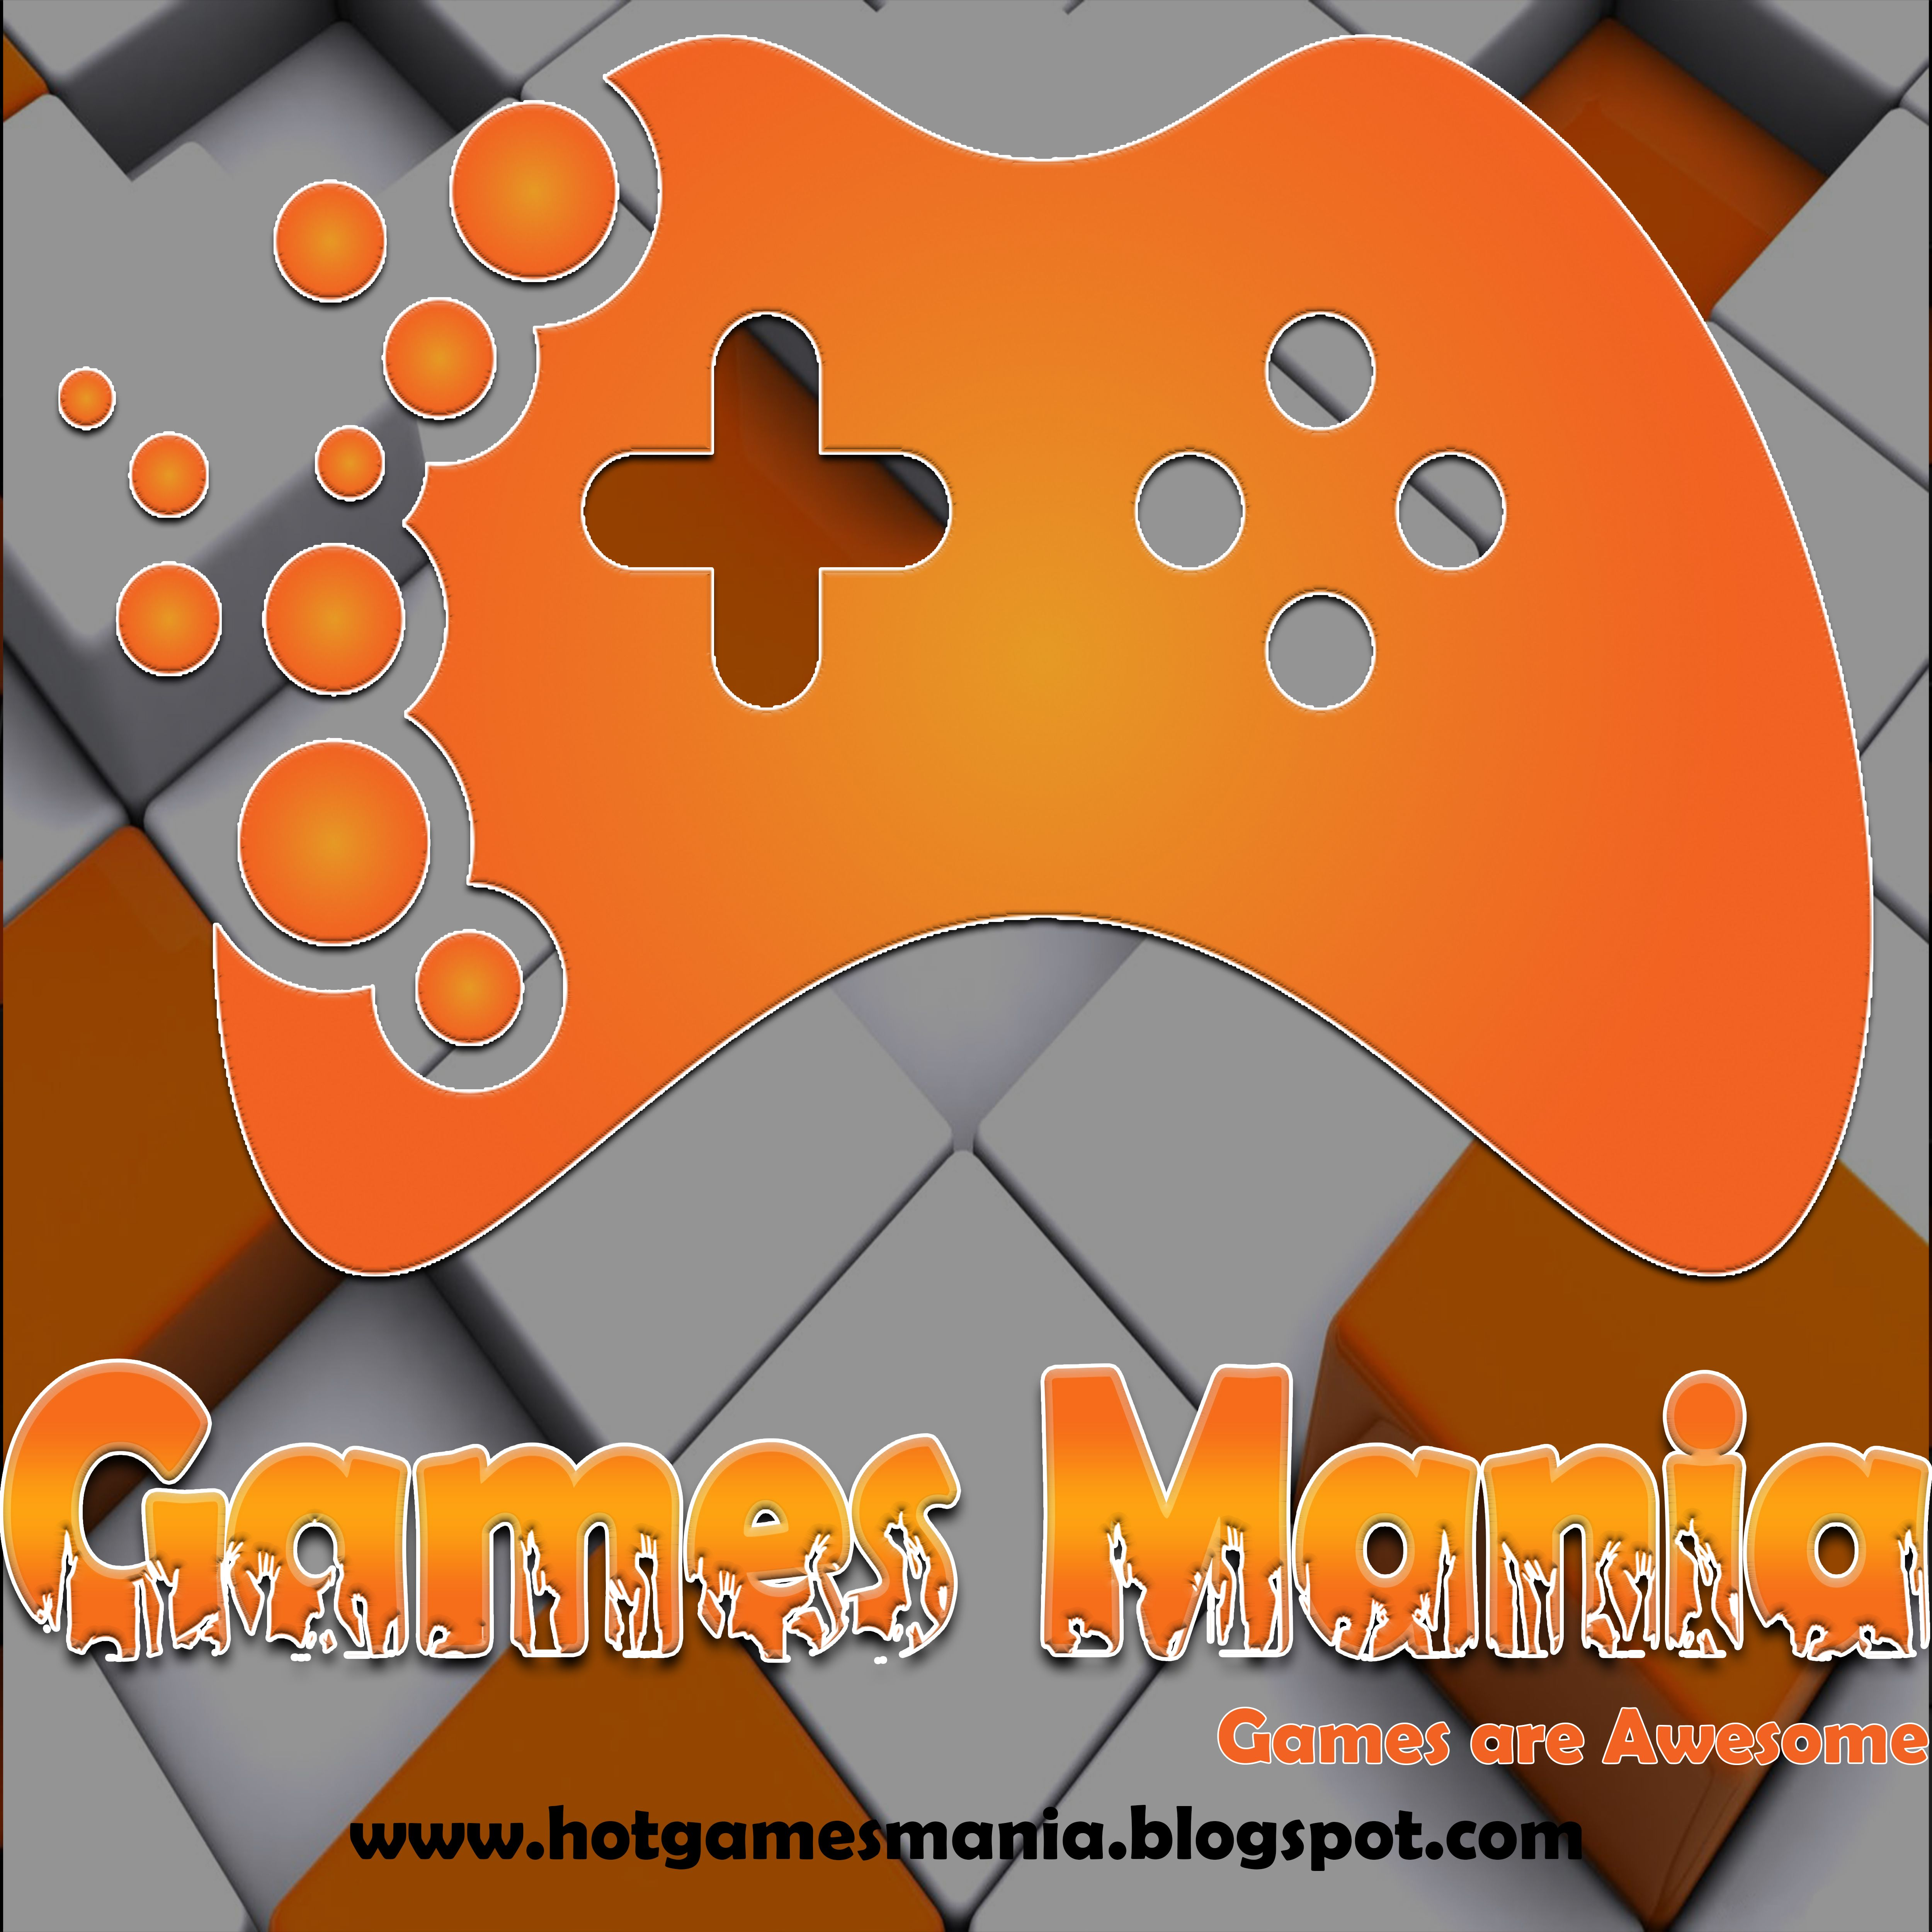 Best Free Games Downloading Site. Free games, Games, Free